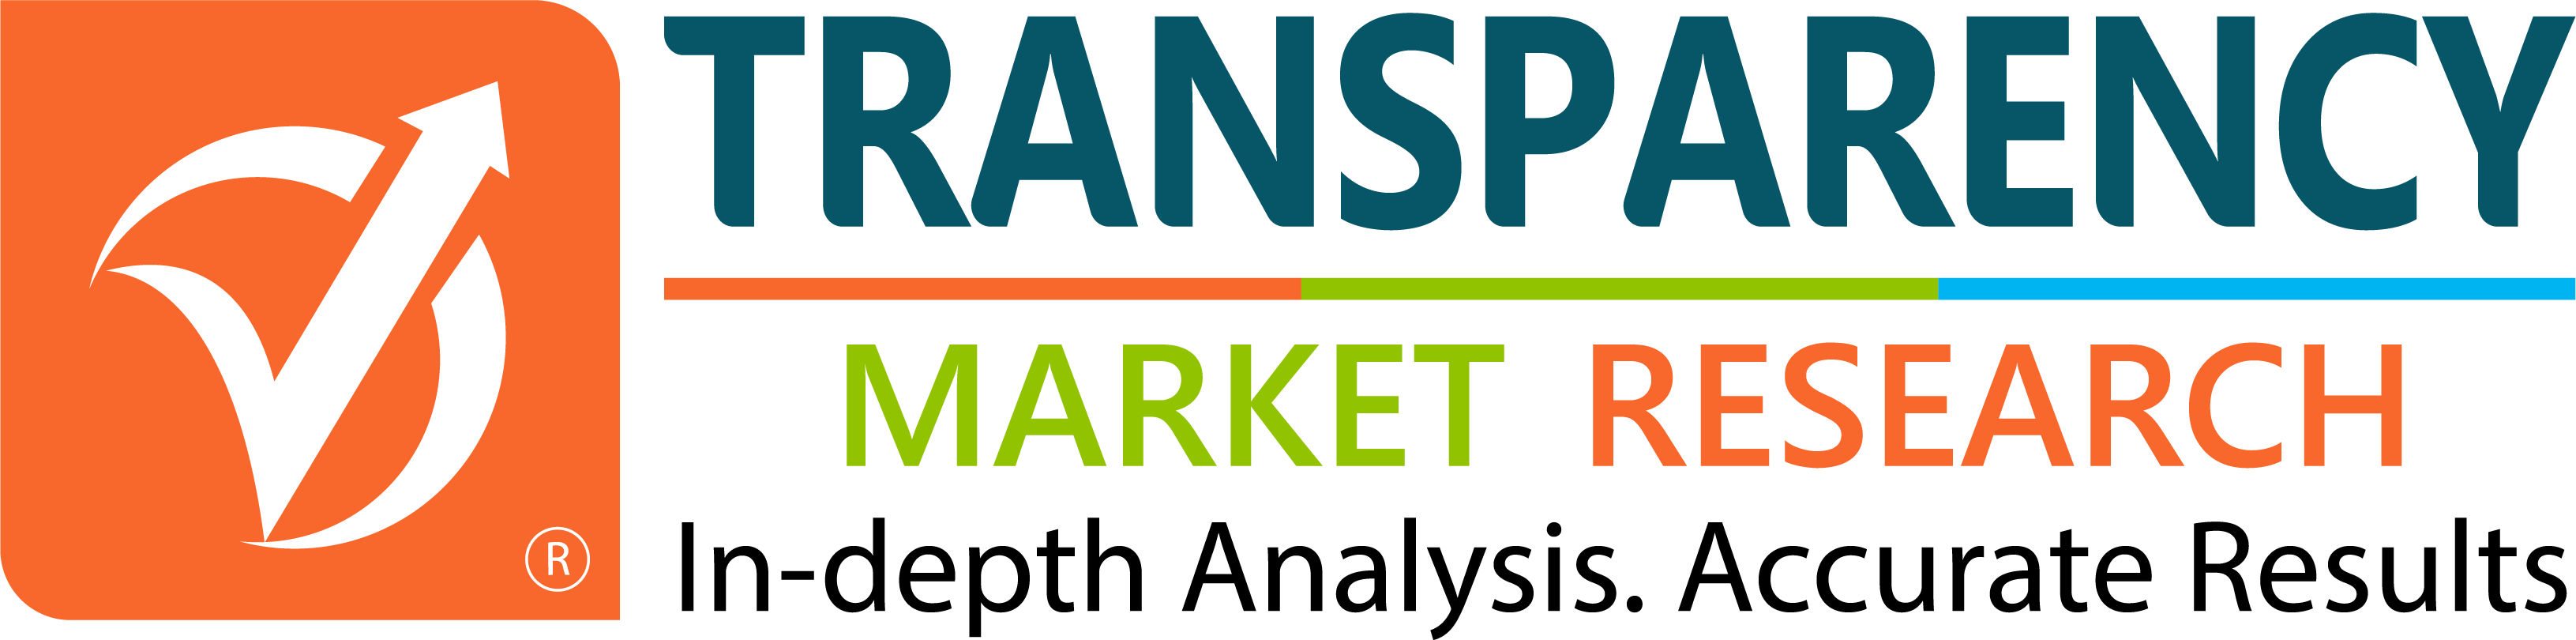 Trastuzumab Market Study Provides an in-depth Industry Analysis with Current Trends & Future Estimations By 2026